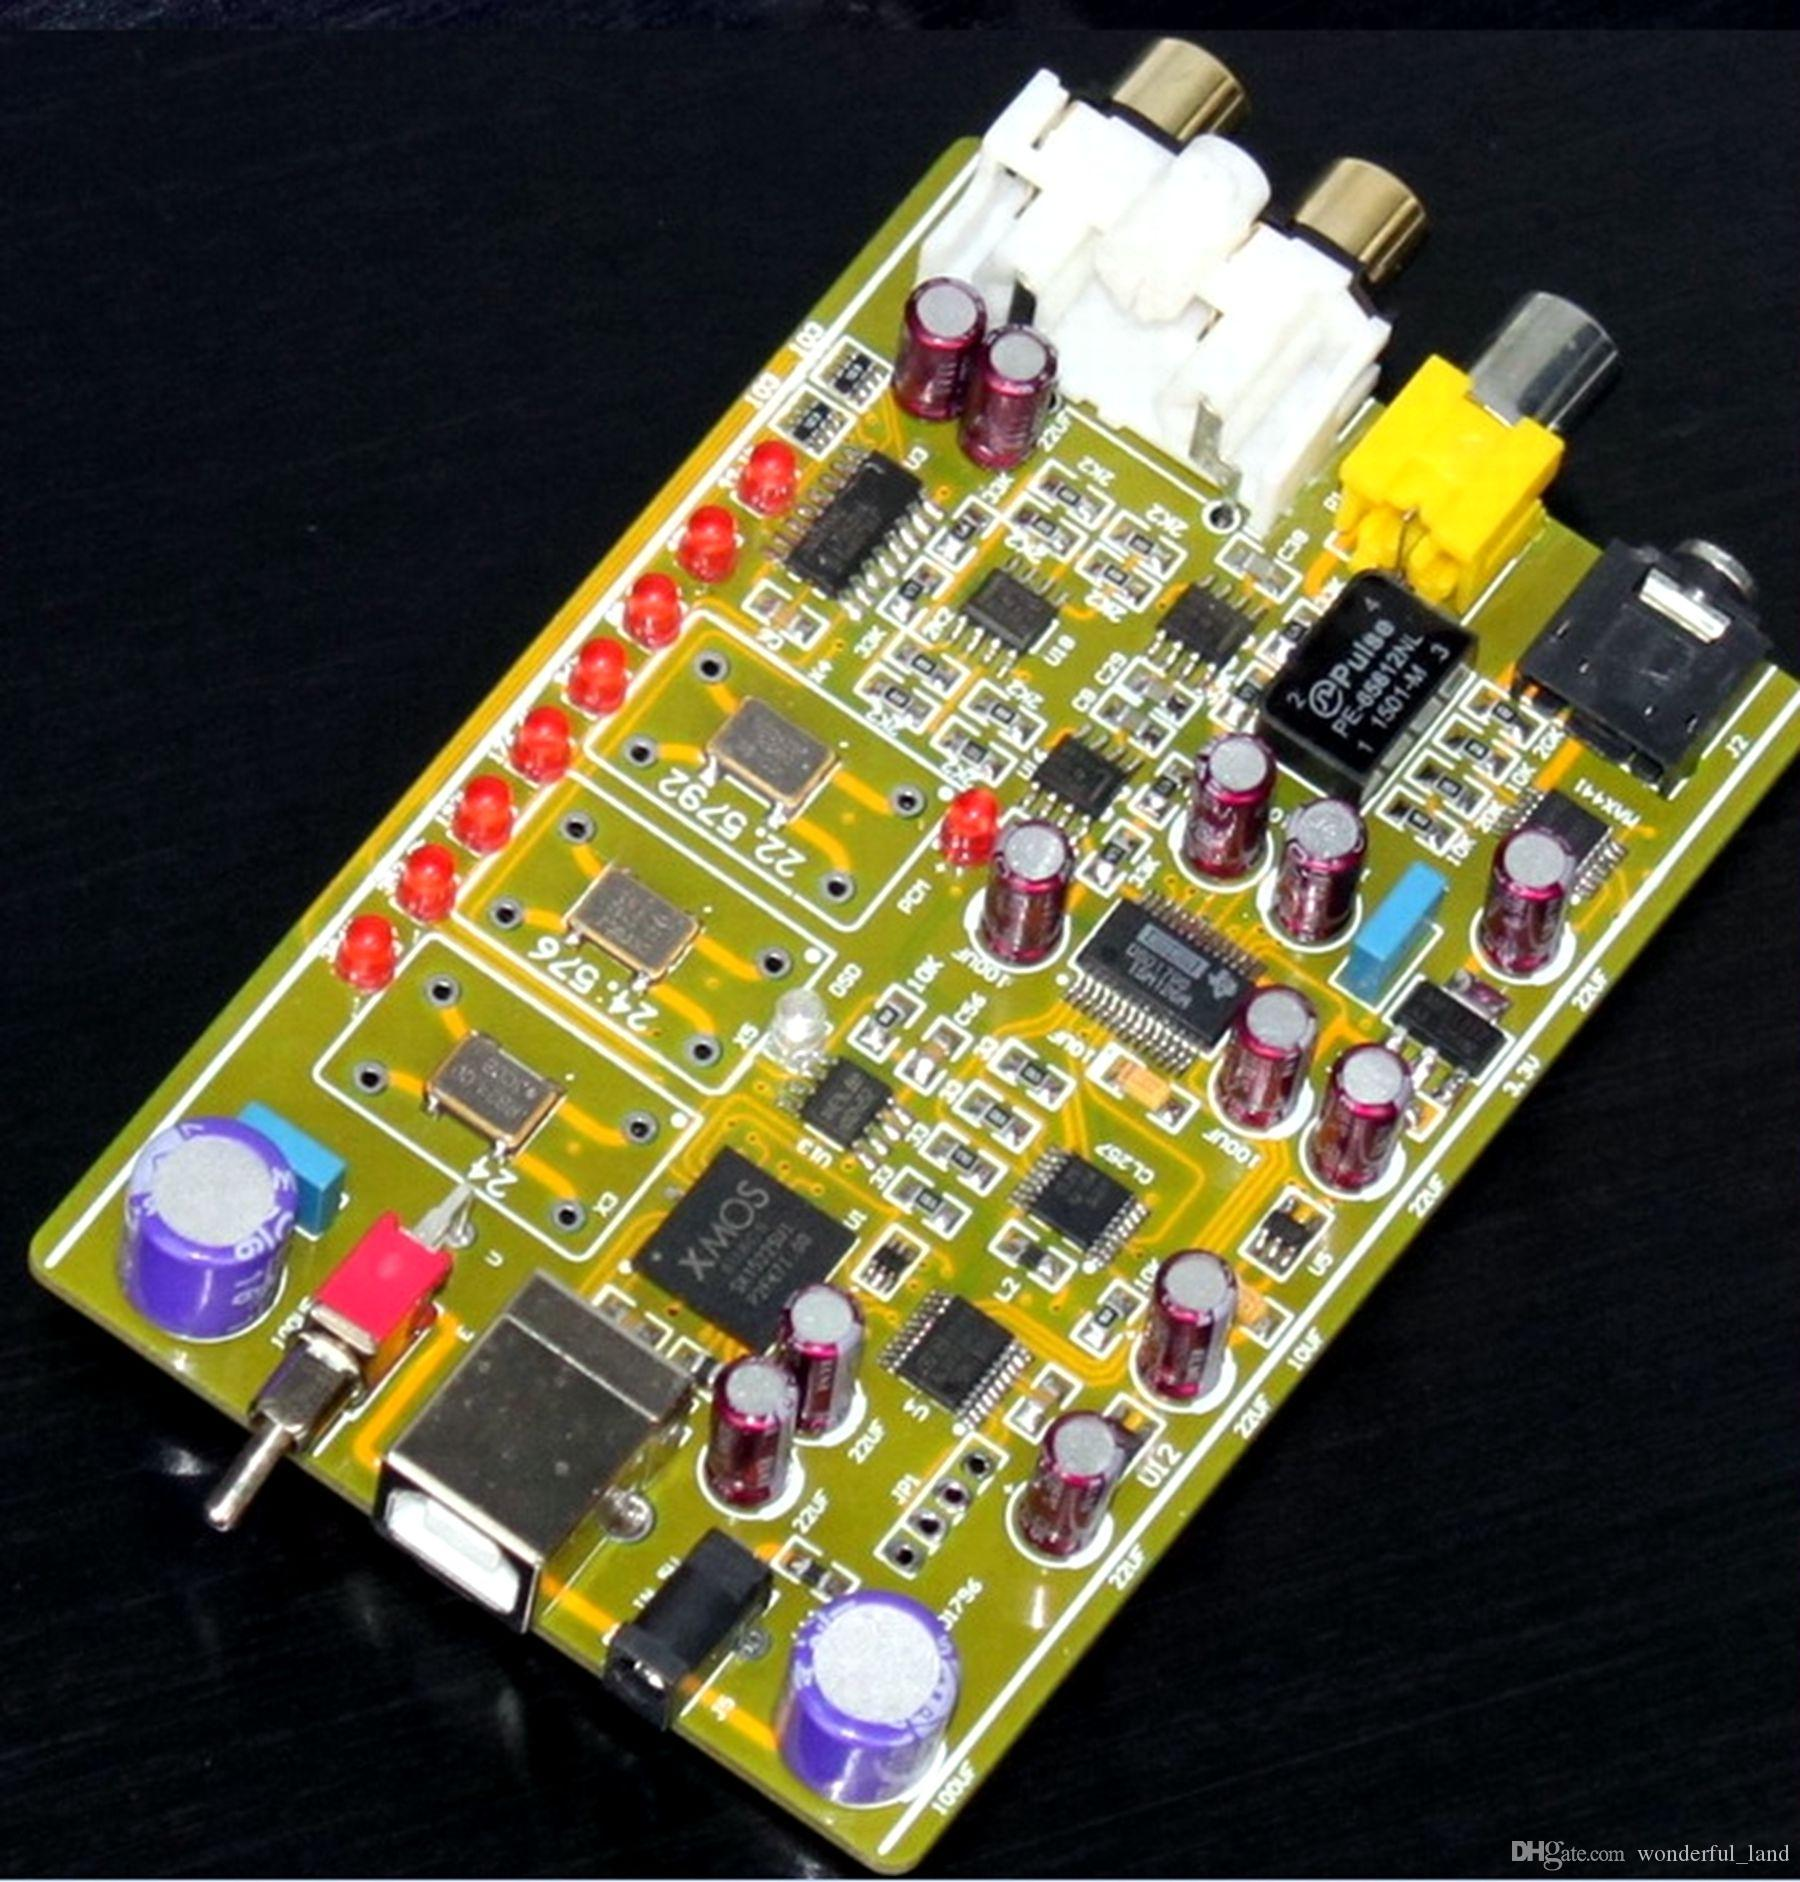 Online Cheap Dsd1796 Xmos U8 Decoders Can Play Dsd64 Dsd128 Oz Aerosol Electronics Circuit Components Printed Boards Dsd256 Format Music By Wonderful Land Dhgatecom